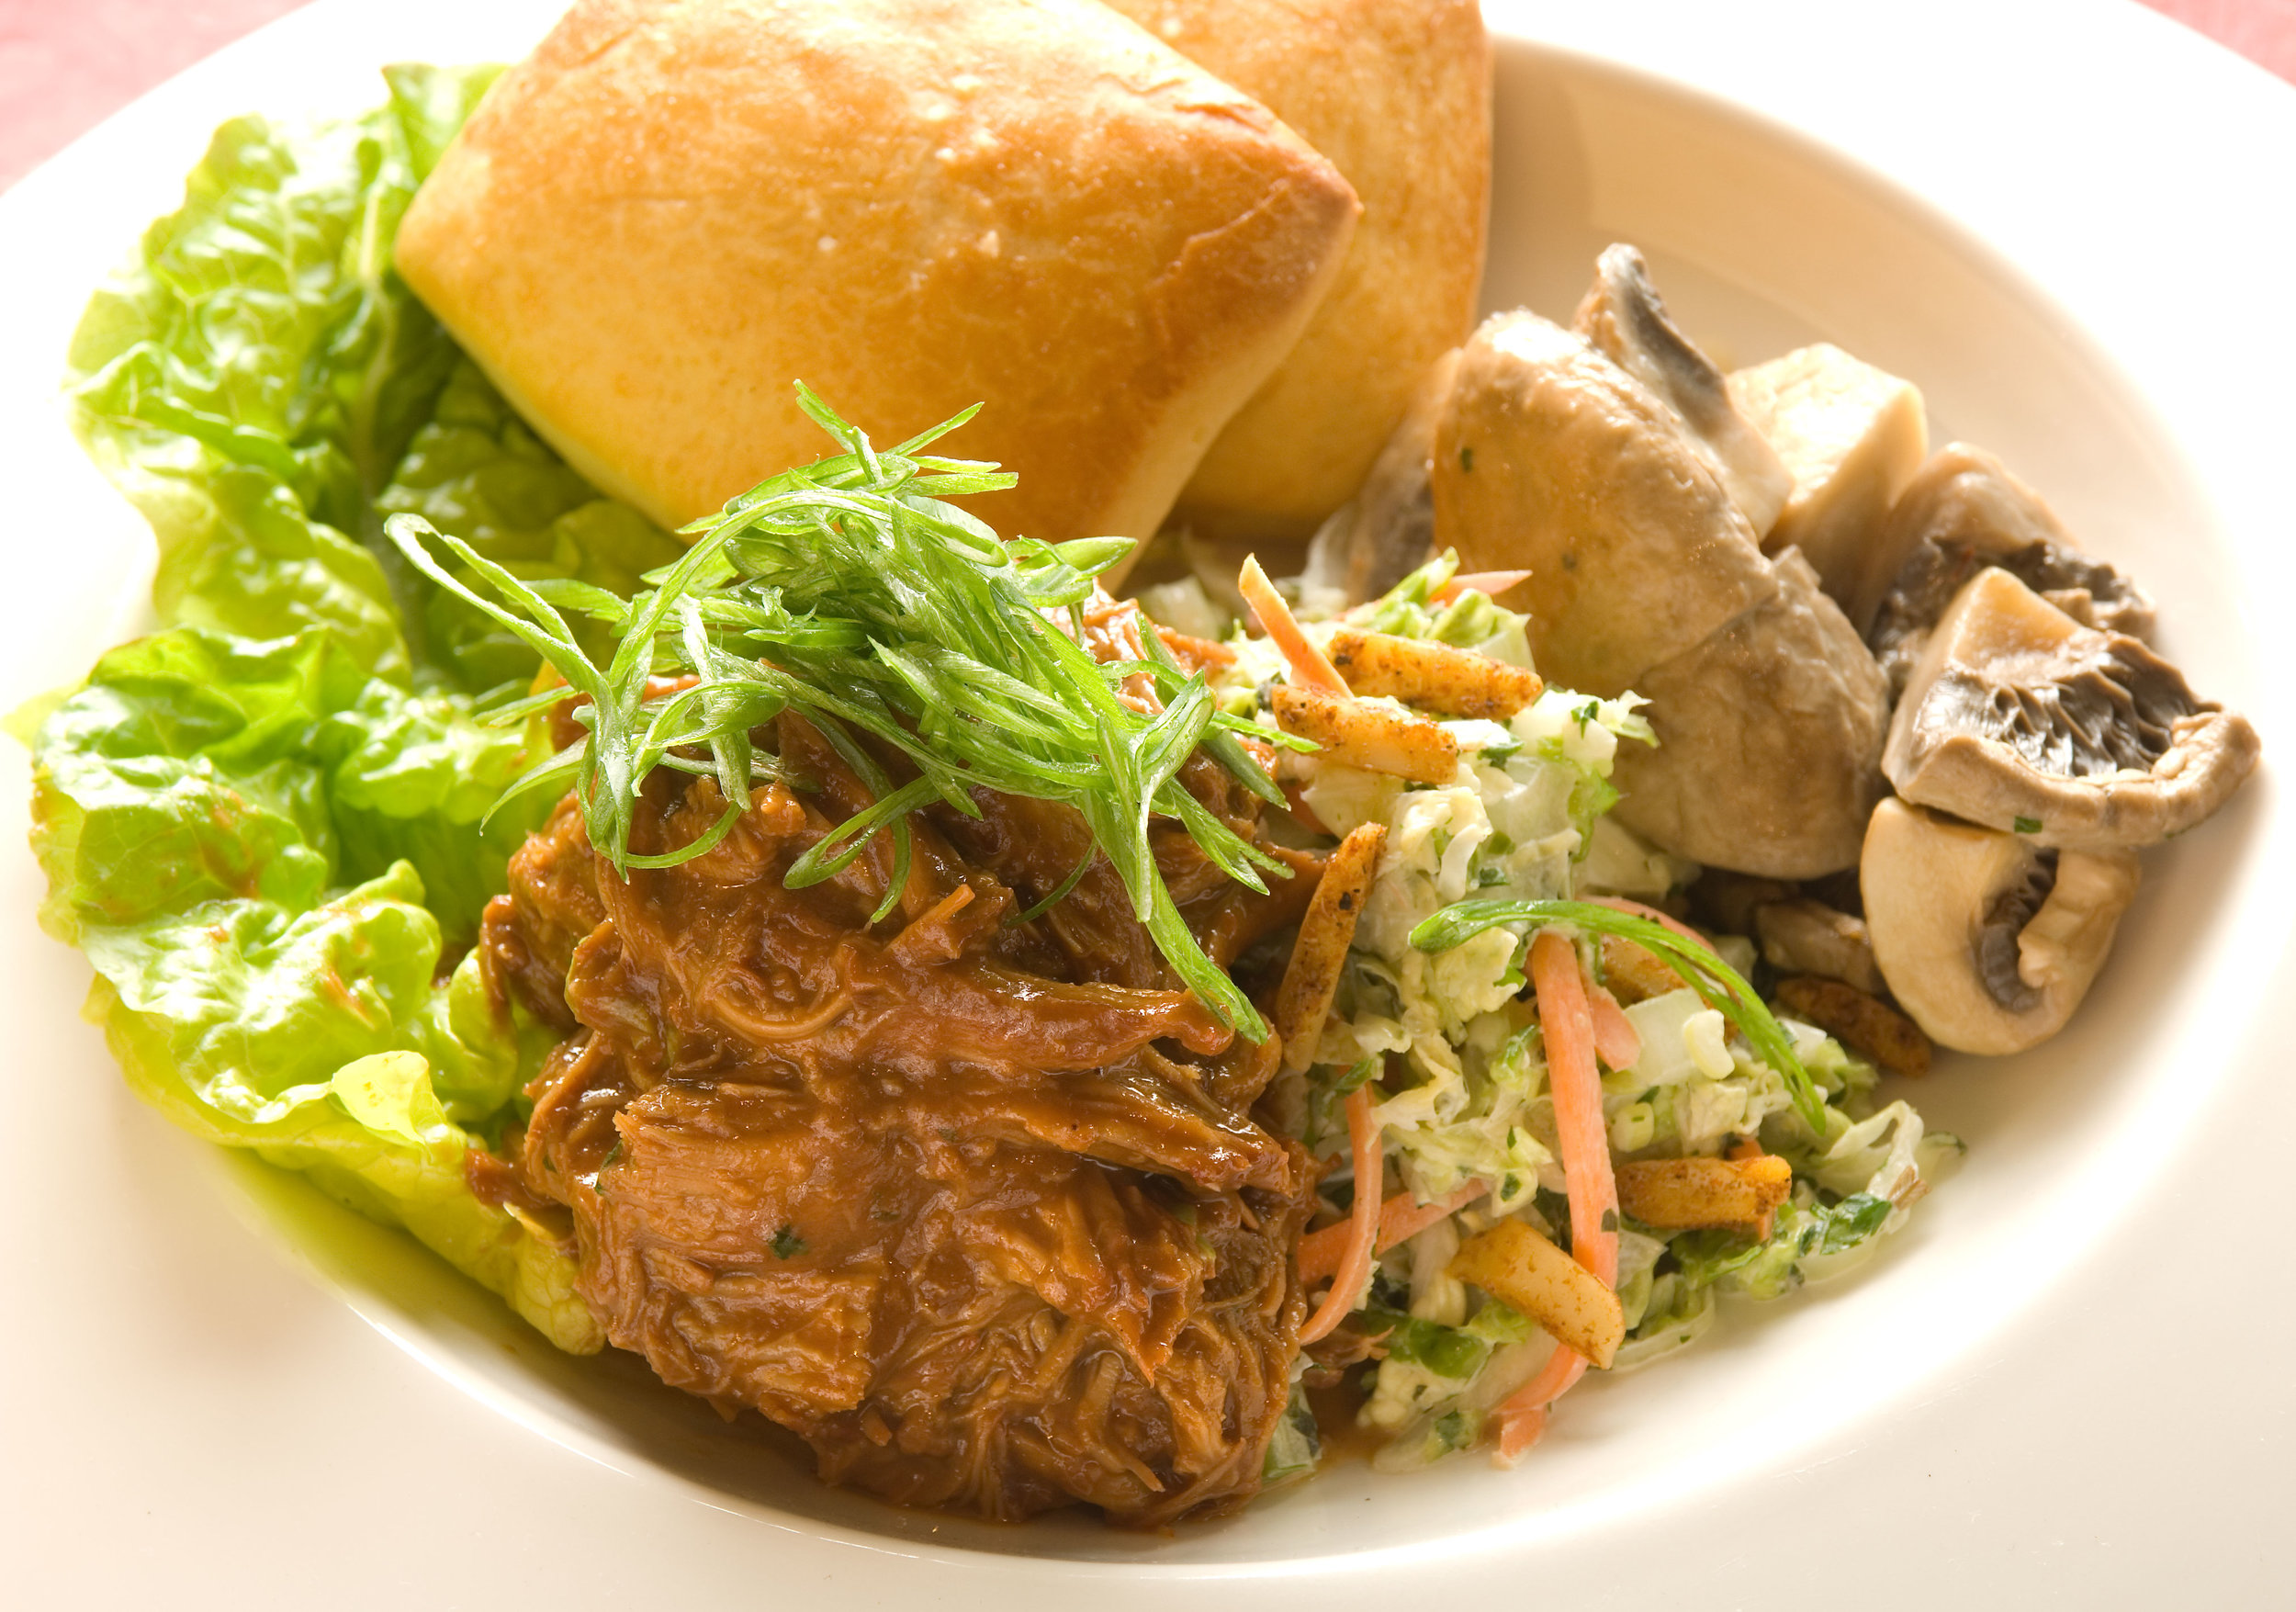 Braised Tea-Smoked Veal Shoulder with Napa Coleslaw and Potato Buns